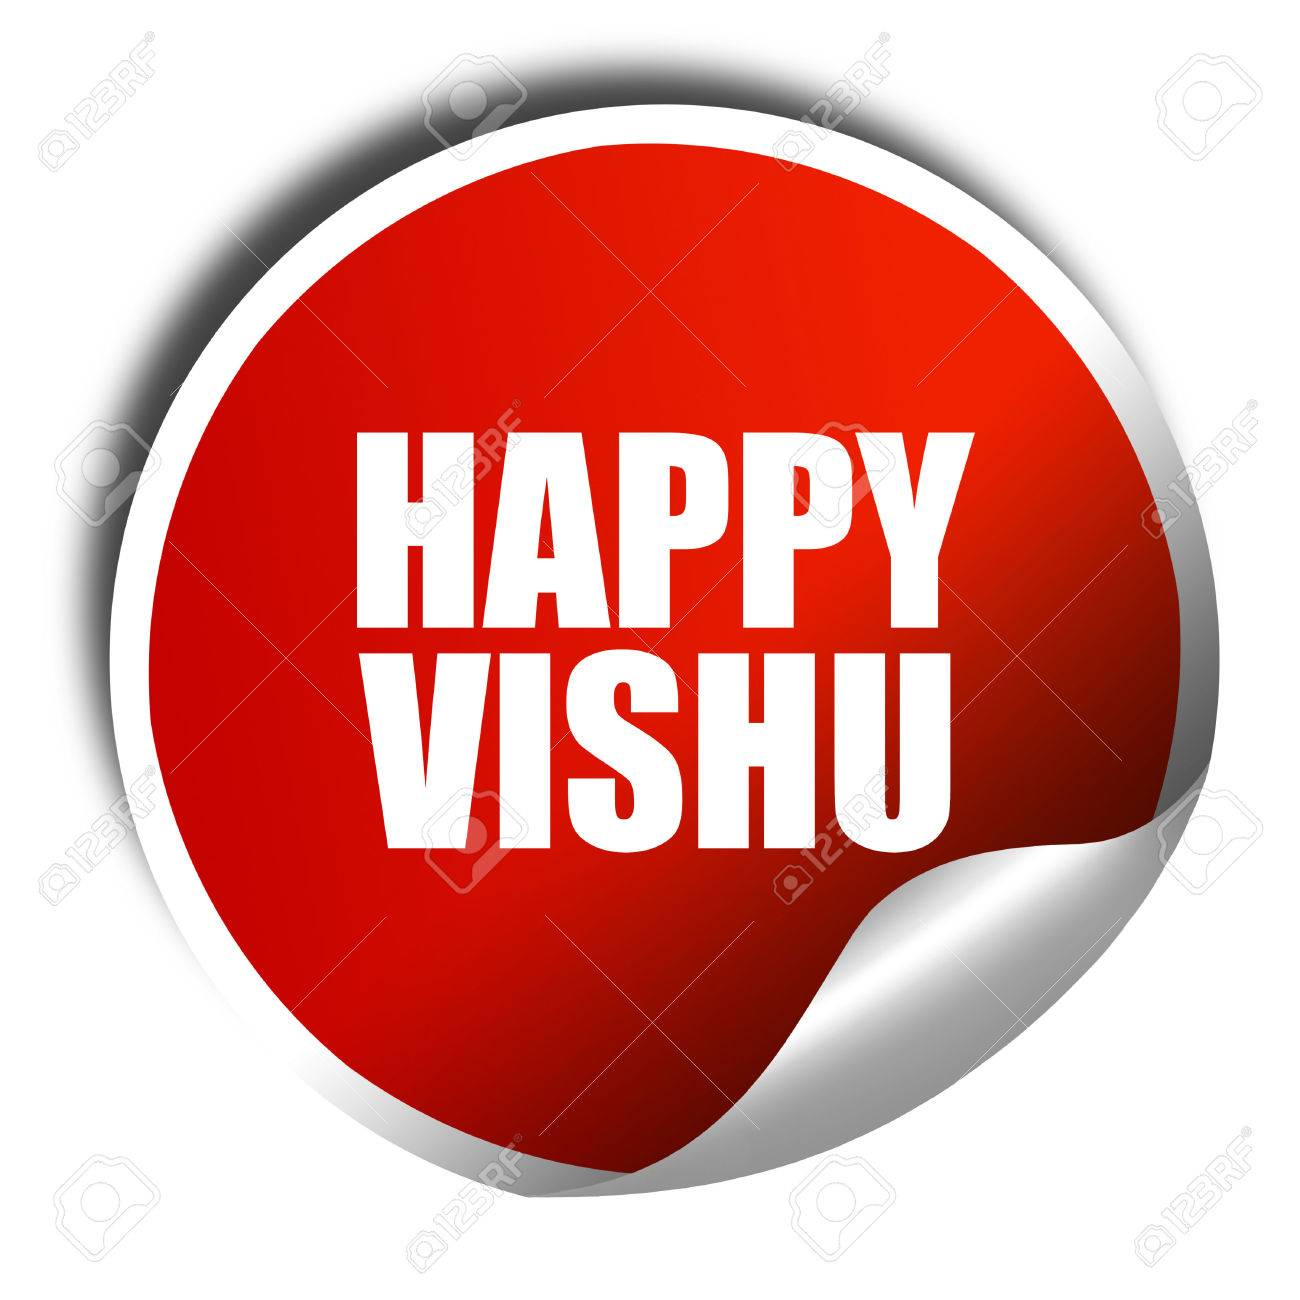 Happy vishu 3d rendering a red shiny sticker stock photo 57495869